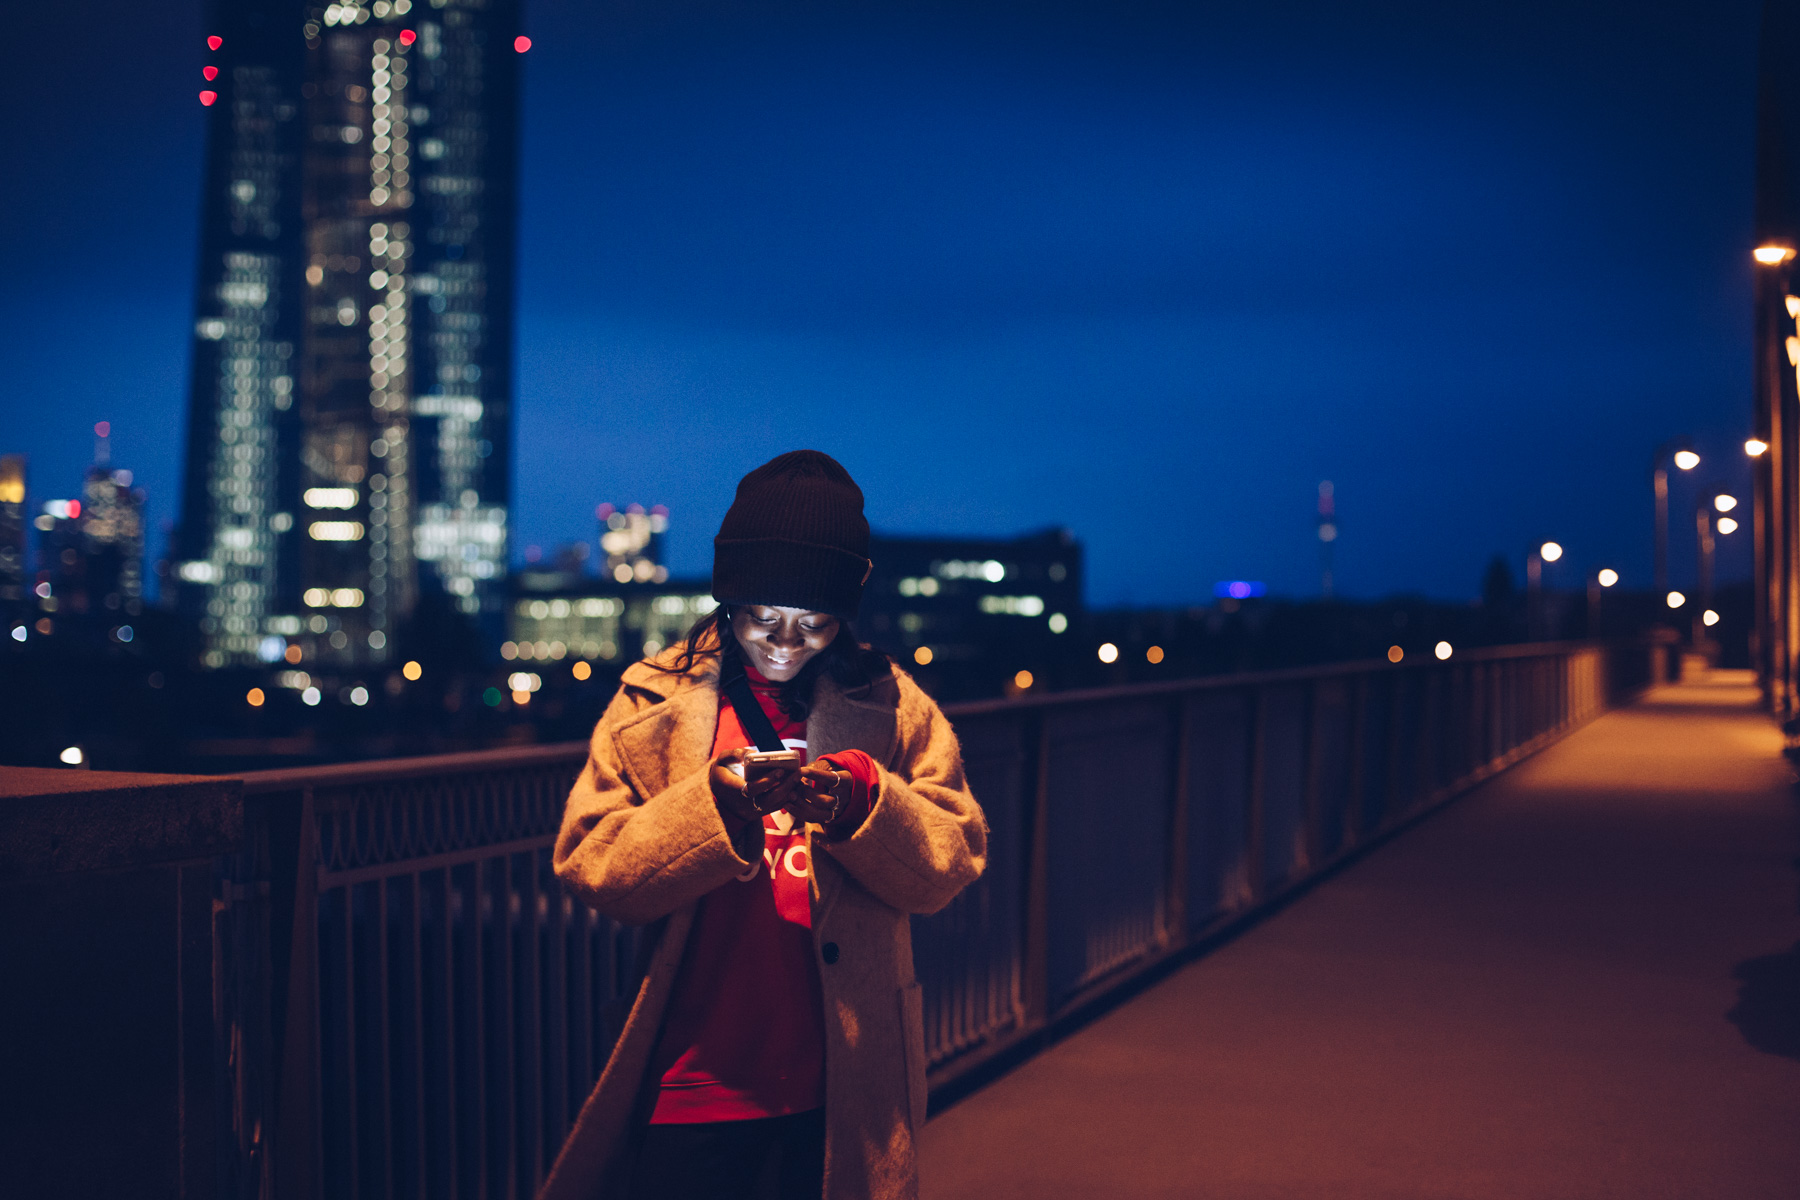 ©TomWoollard_lifestyle-editorial-young-woman-smiling-at-phone-message-nighttime-Frankfurt-skyline.jpg